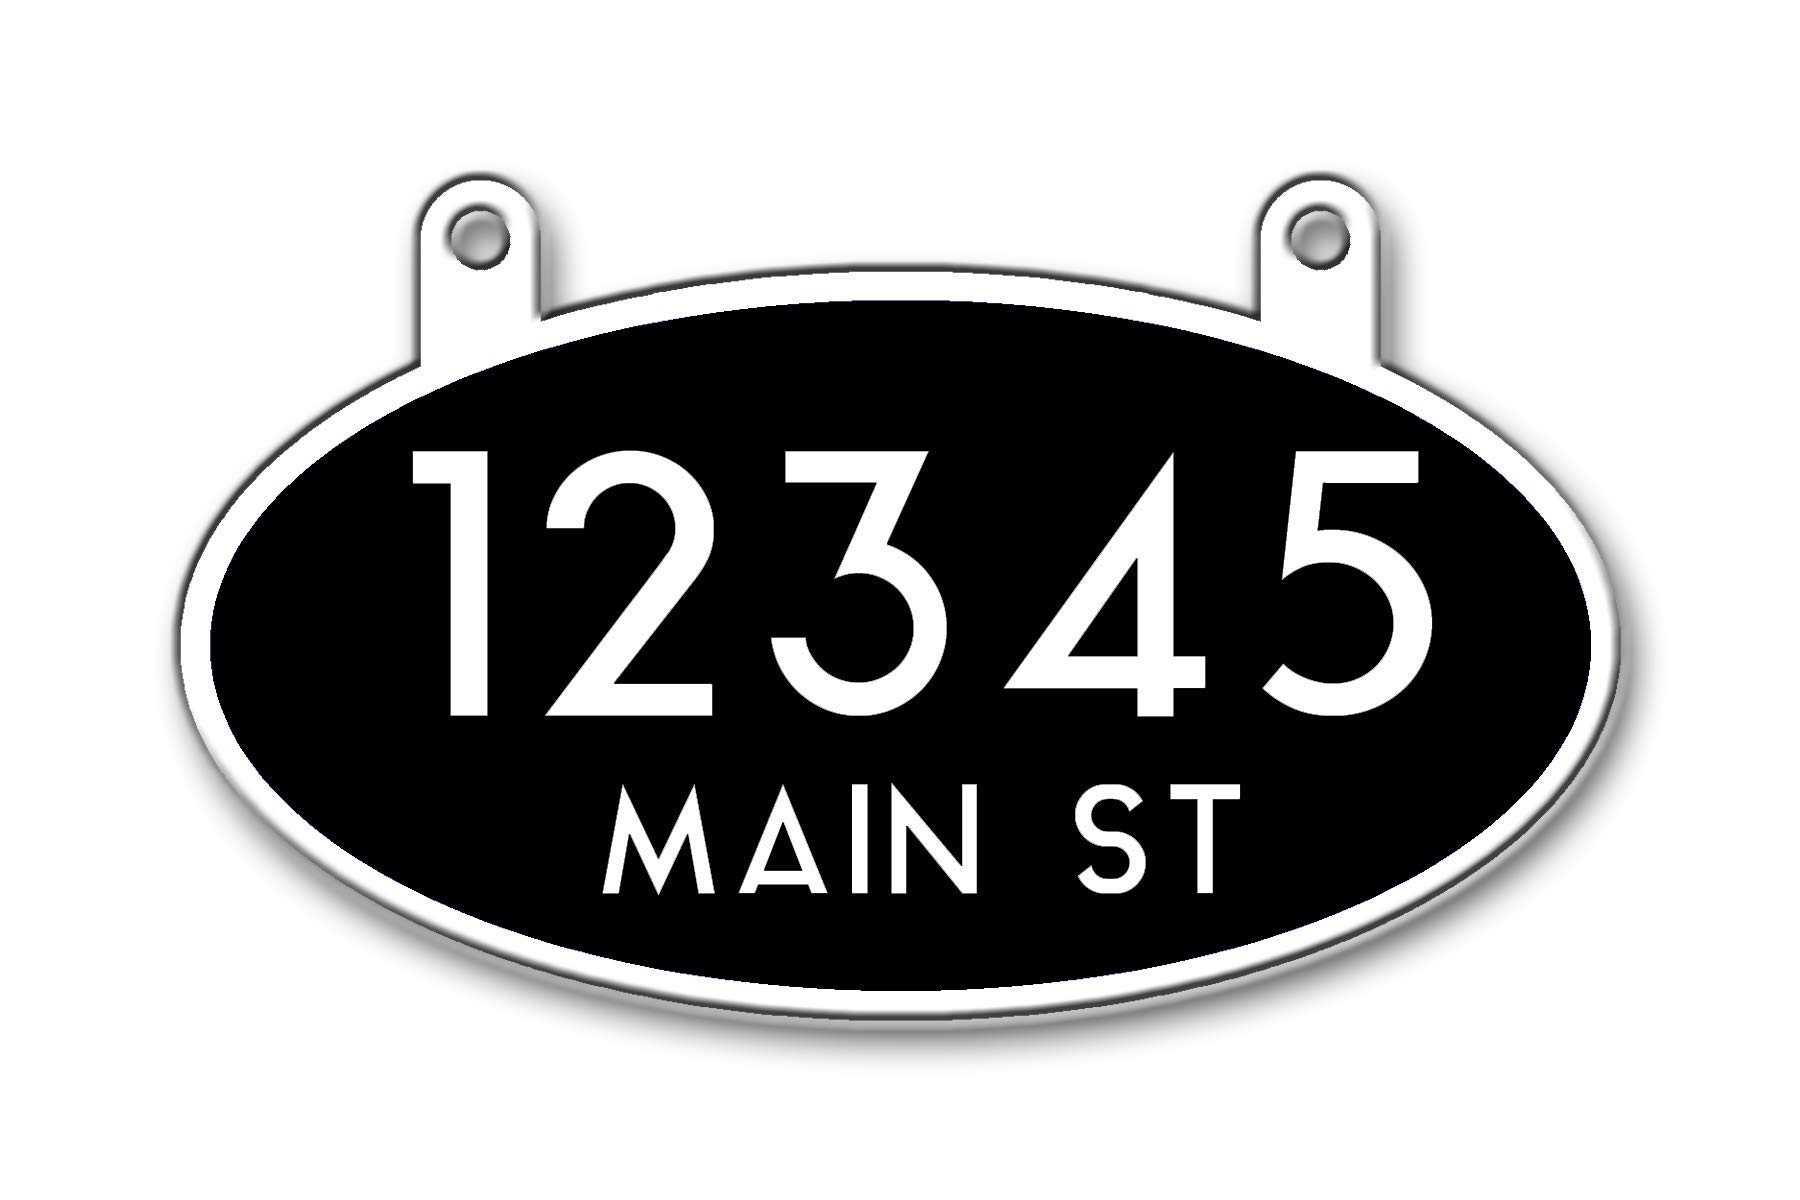 Reflective Hanging Mailbox Address Sign, Double Sided (Black) by Curb-N-Sign